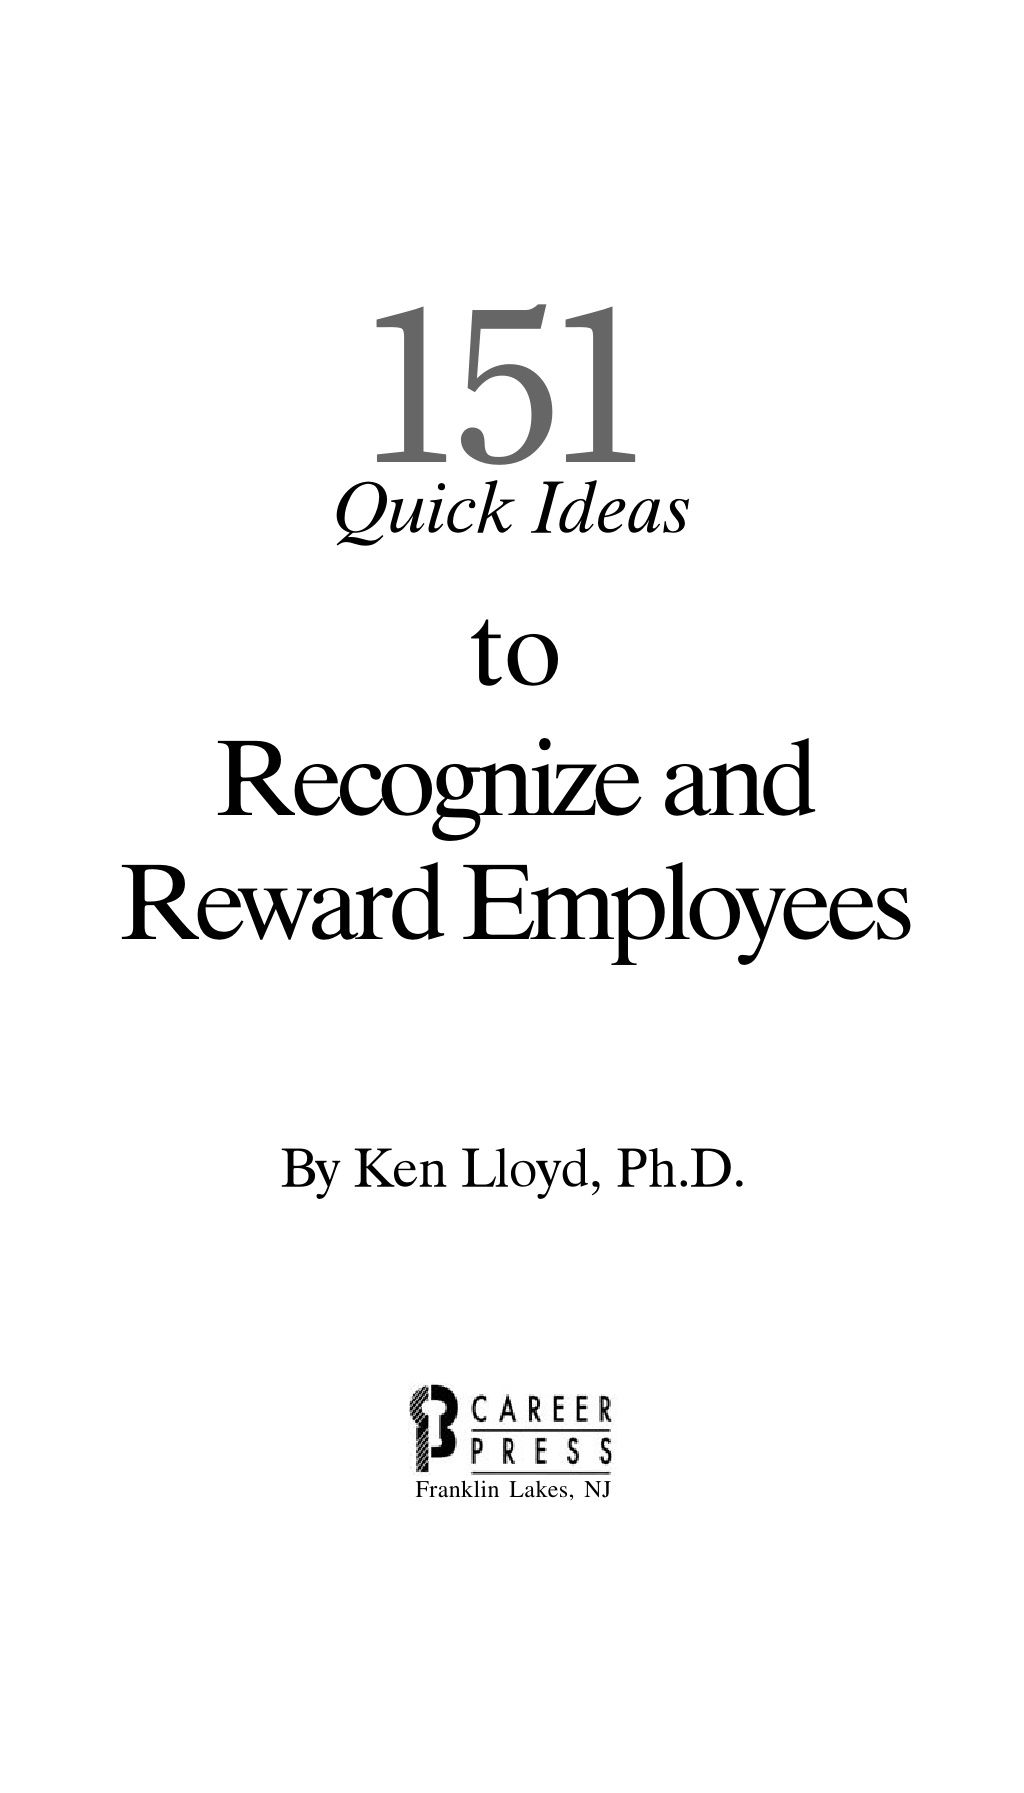 positive thoughts offices employee appreciation and search employee recognition has many measurable benefits such as higher retention rates and increased productivity